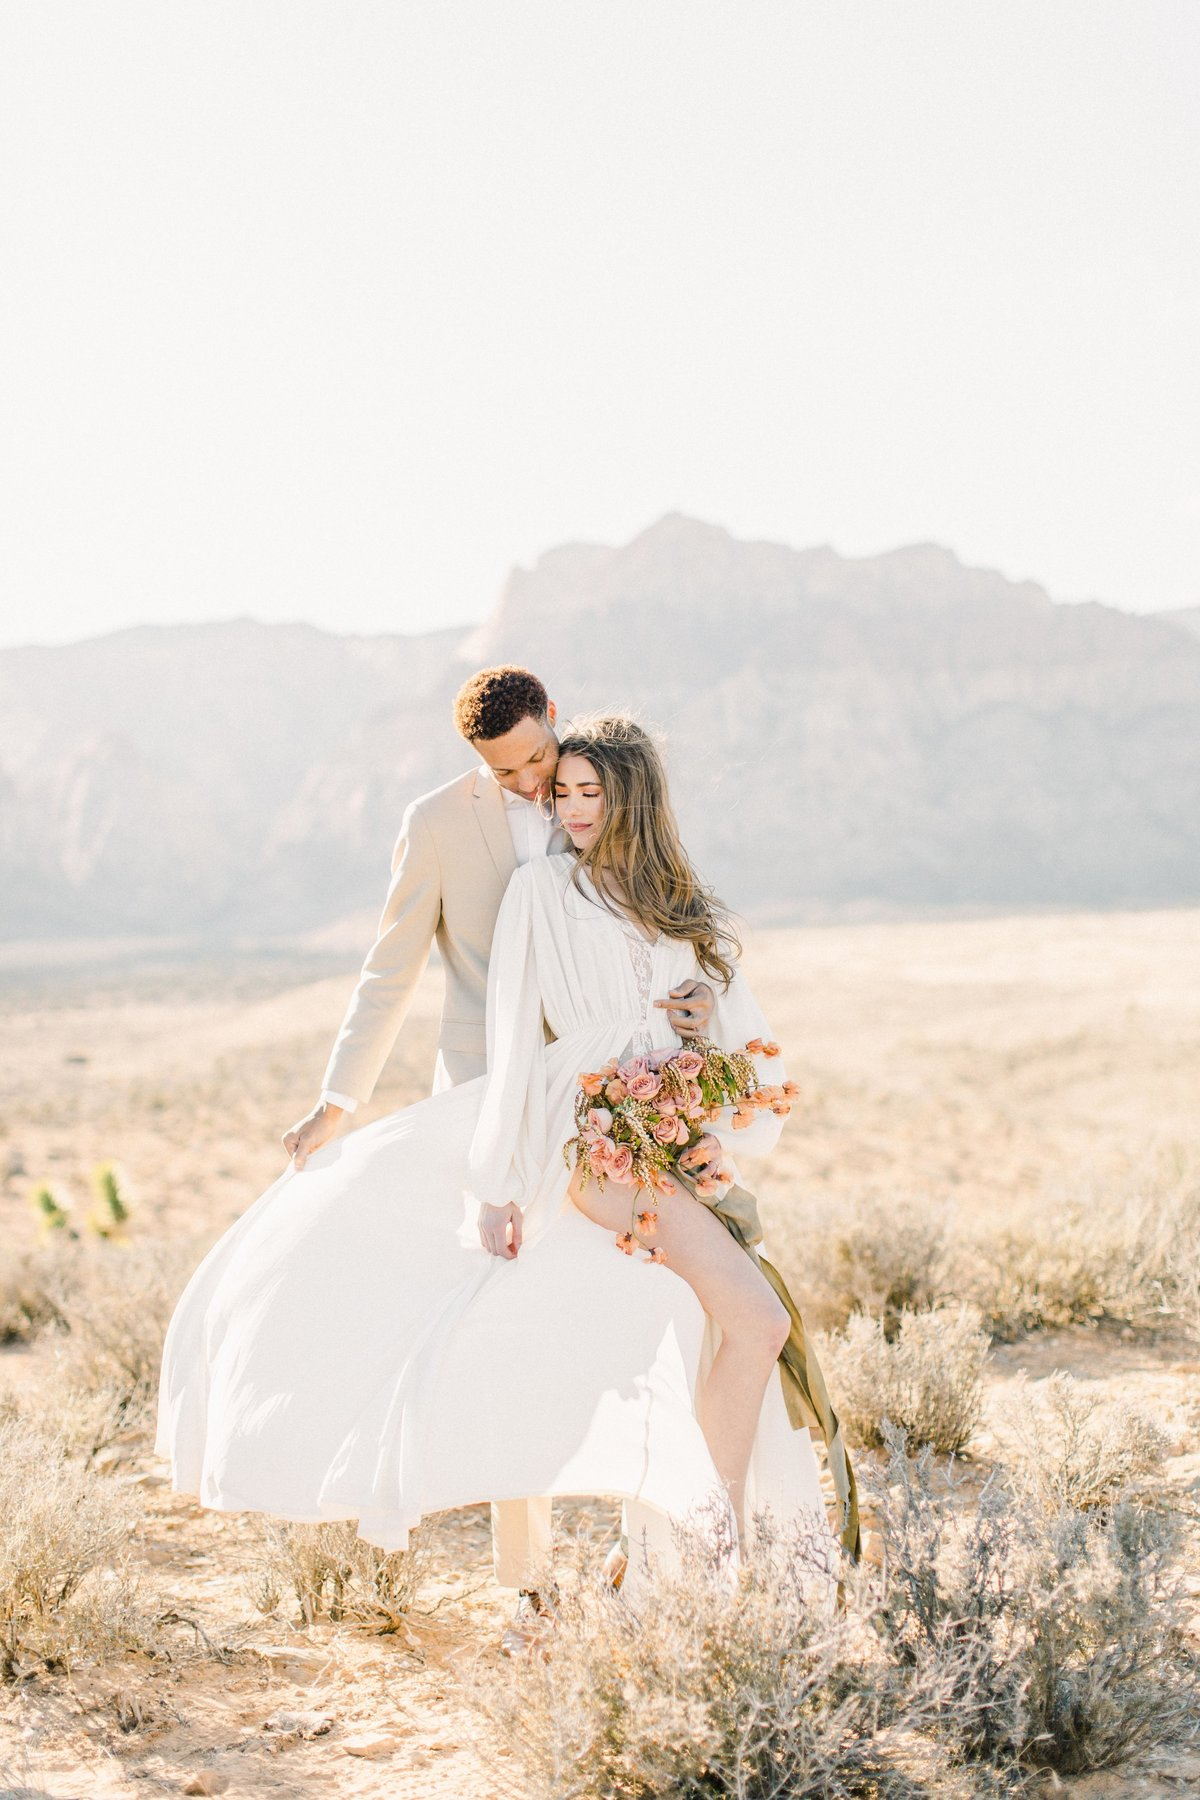 Babsie-Ly-Photography-Red-Rock-Canyon-Las-Vegas-Wedding-Elopement-Fine-Art-Film-domenica-domenica-robe-002